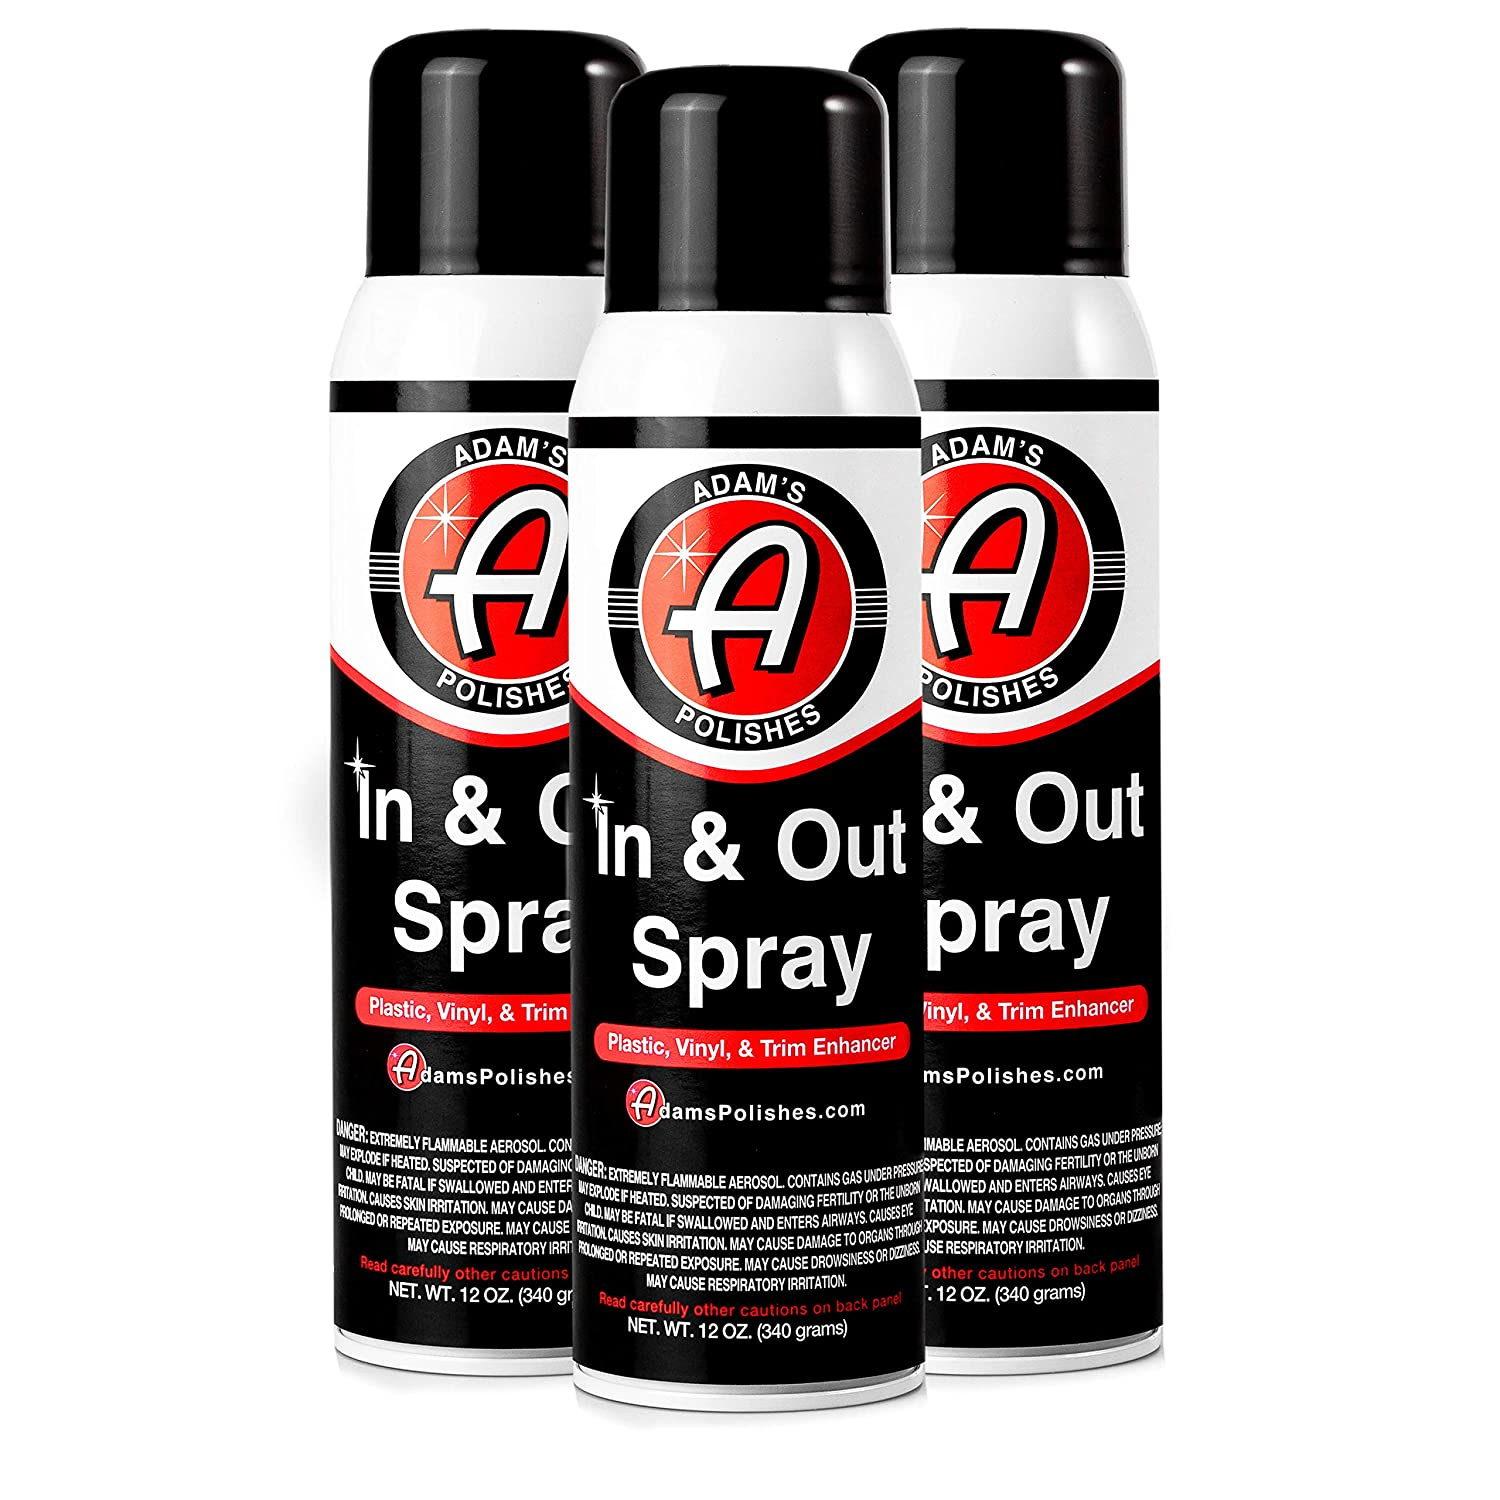 Adam's in Out Spray - Ultimate Solution Dressing Those Hard to Reach Areas Around Your Car - Dark, Rich, Longer Lasting Shine (3 Pack) Adam' s Polishes